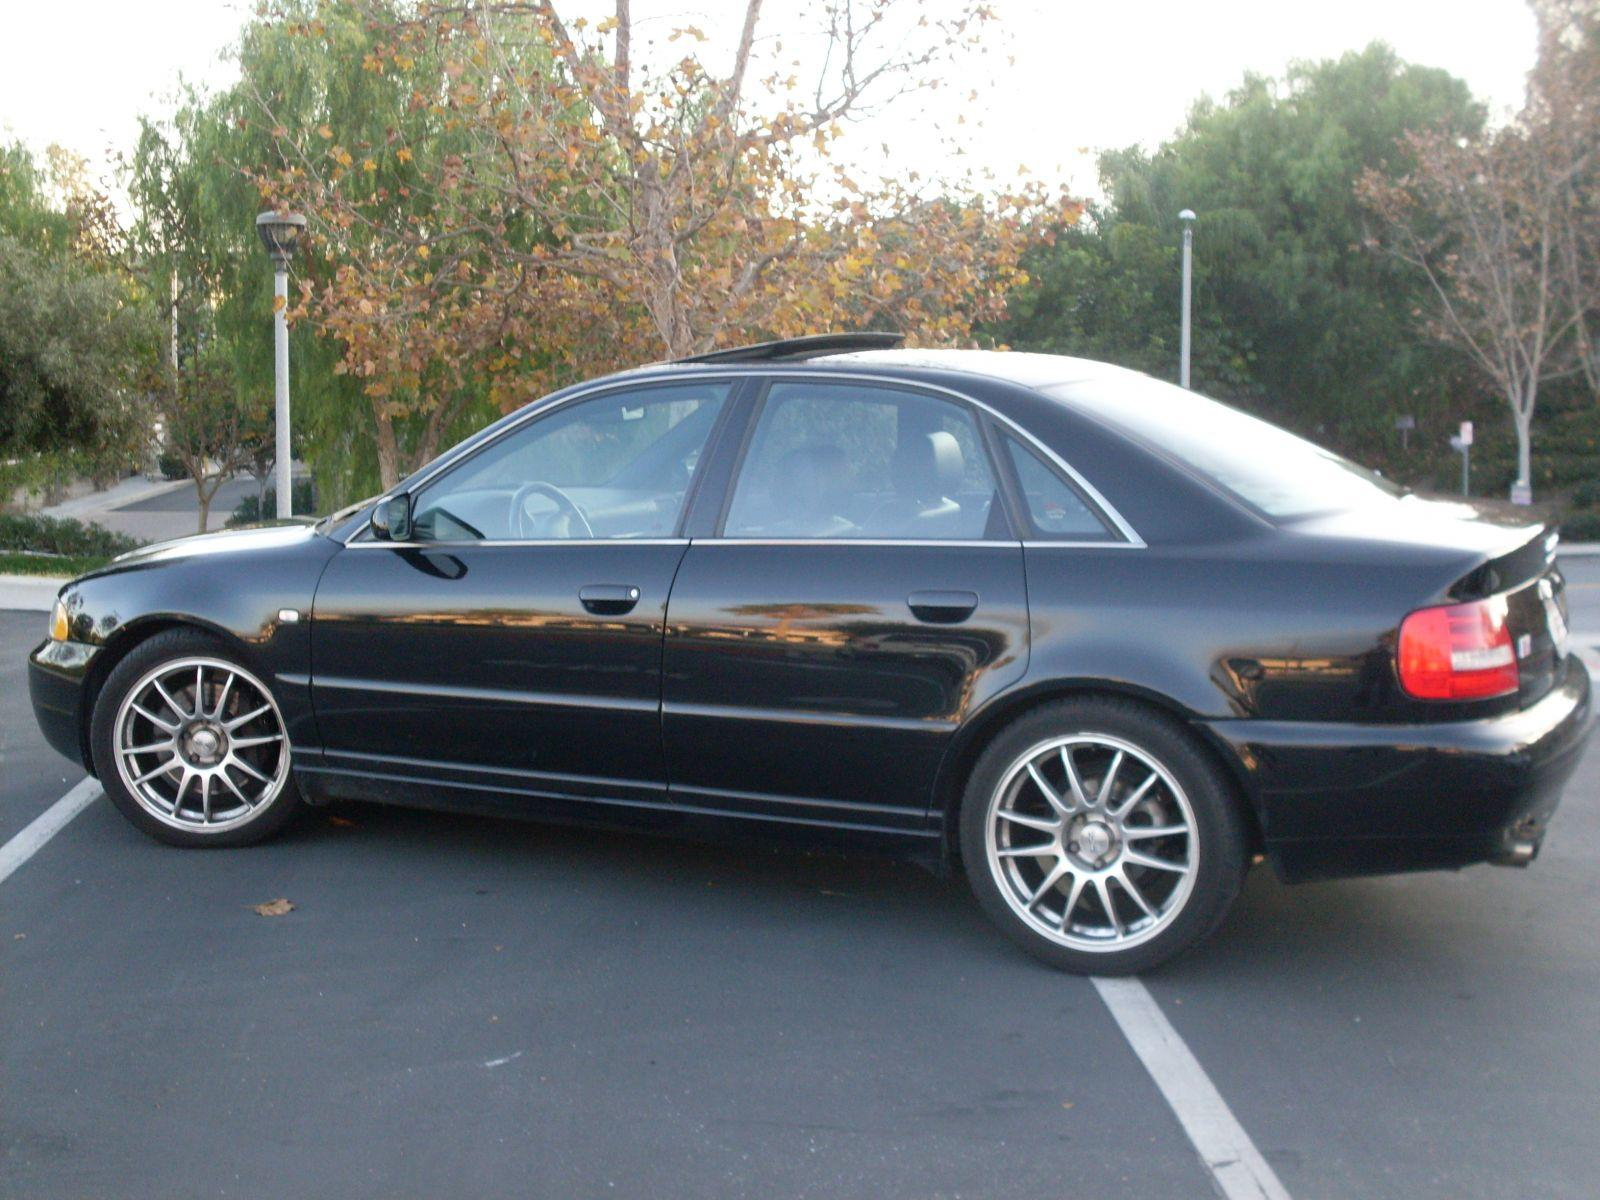 2000 Audi S4 Information And Photos Zombiedrive A6 Manual 1 800 1024 1280 1600 Origin